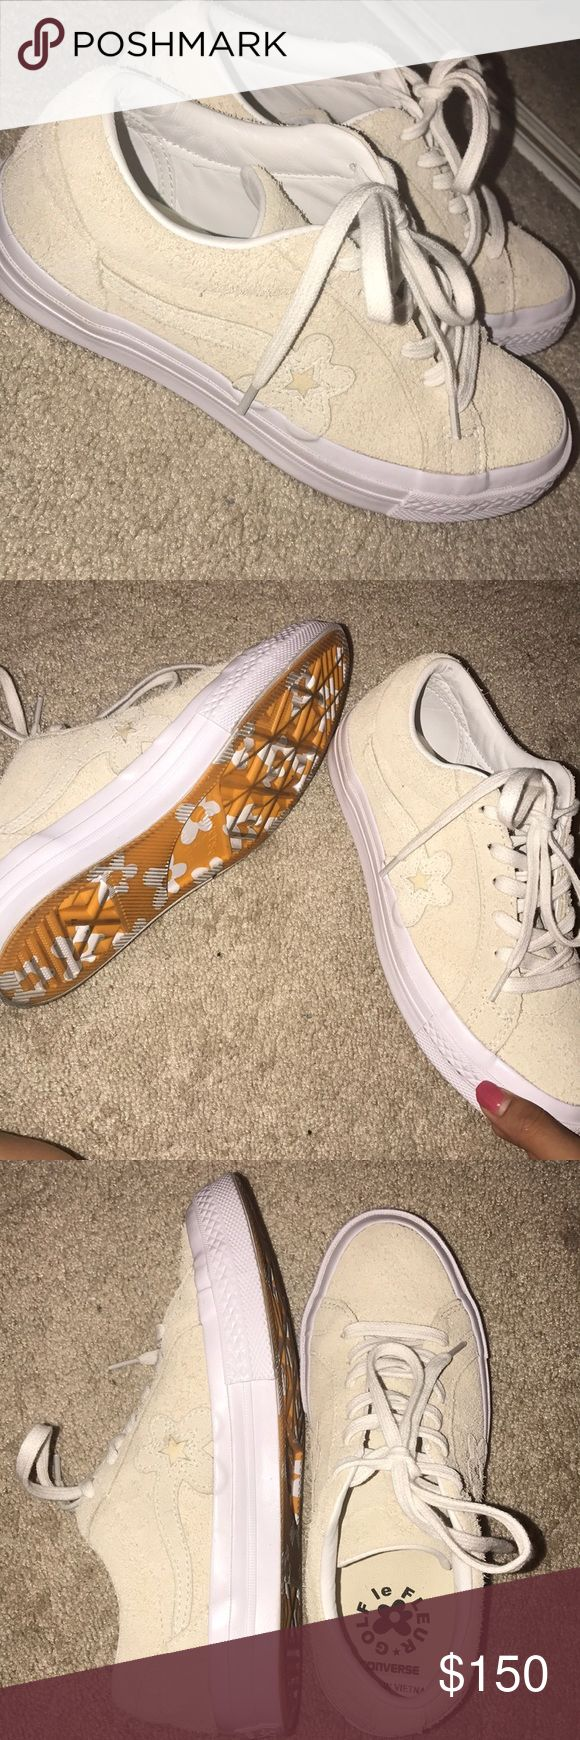 Golf Le Fleur shoes Tan Size: 6 in women; 4 in men. Worn twice; look brand new. Comes with box & golf Le fleur shoe bag GOLF Shoes Sneakers